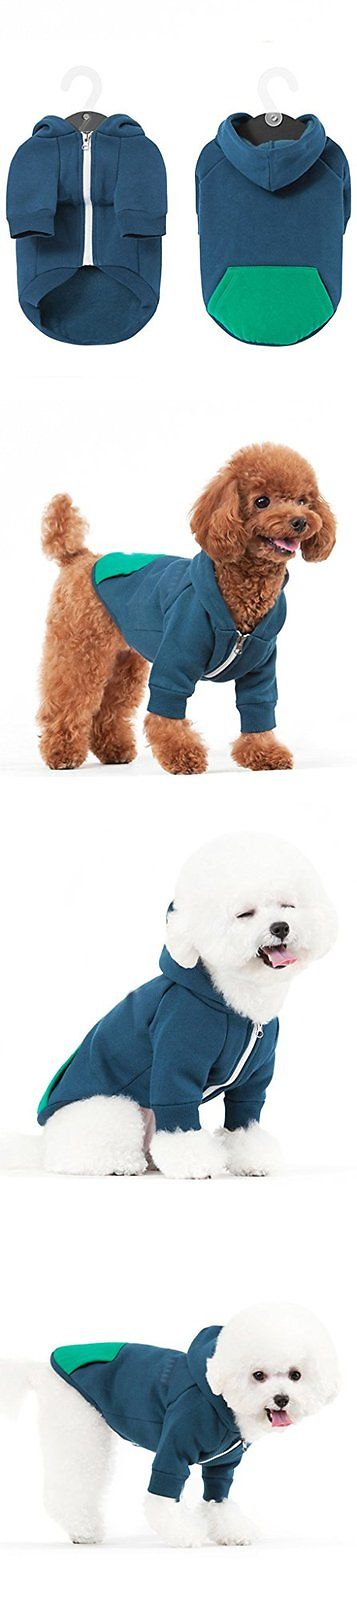 Animals Dog: Petbobo Pet Clothes For Dog Cat Puppy Winter Sweatshirt Warm Sweater Hoodie Dog BUY IT NOW ONLY: $37.24